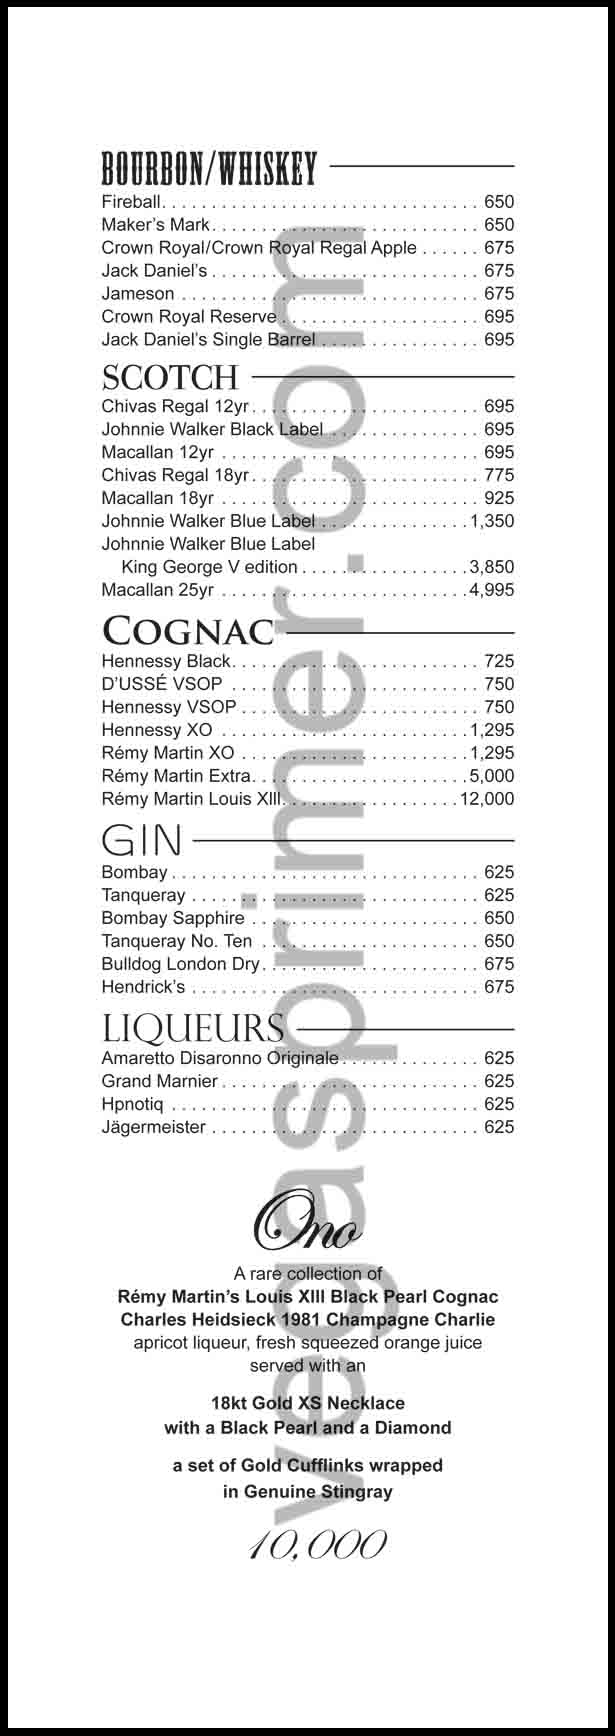 Bourbon, Whiskey, Scotch, Cognac, Gin and Liqueur options at XS Las Vegas